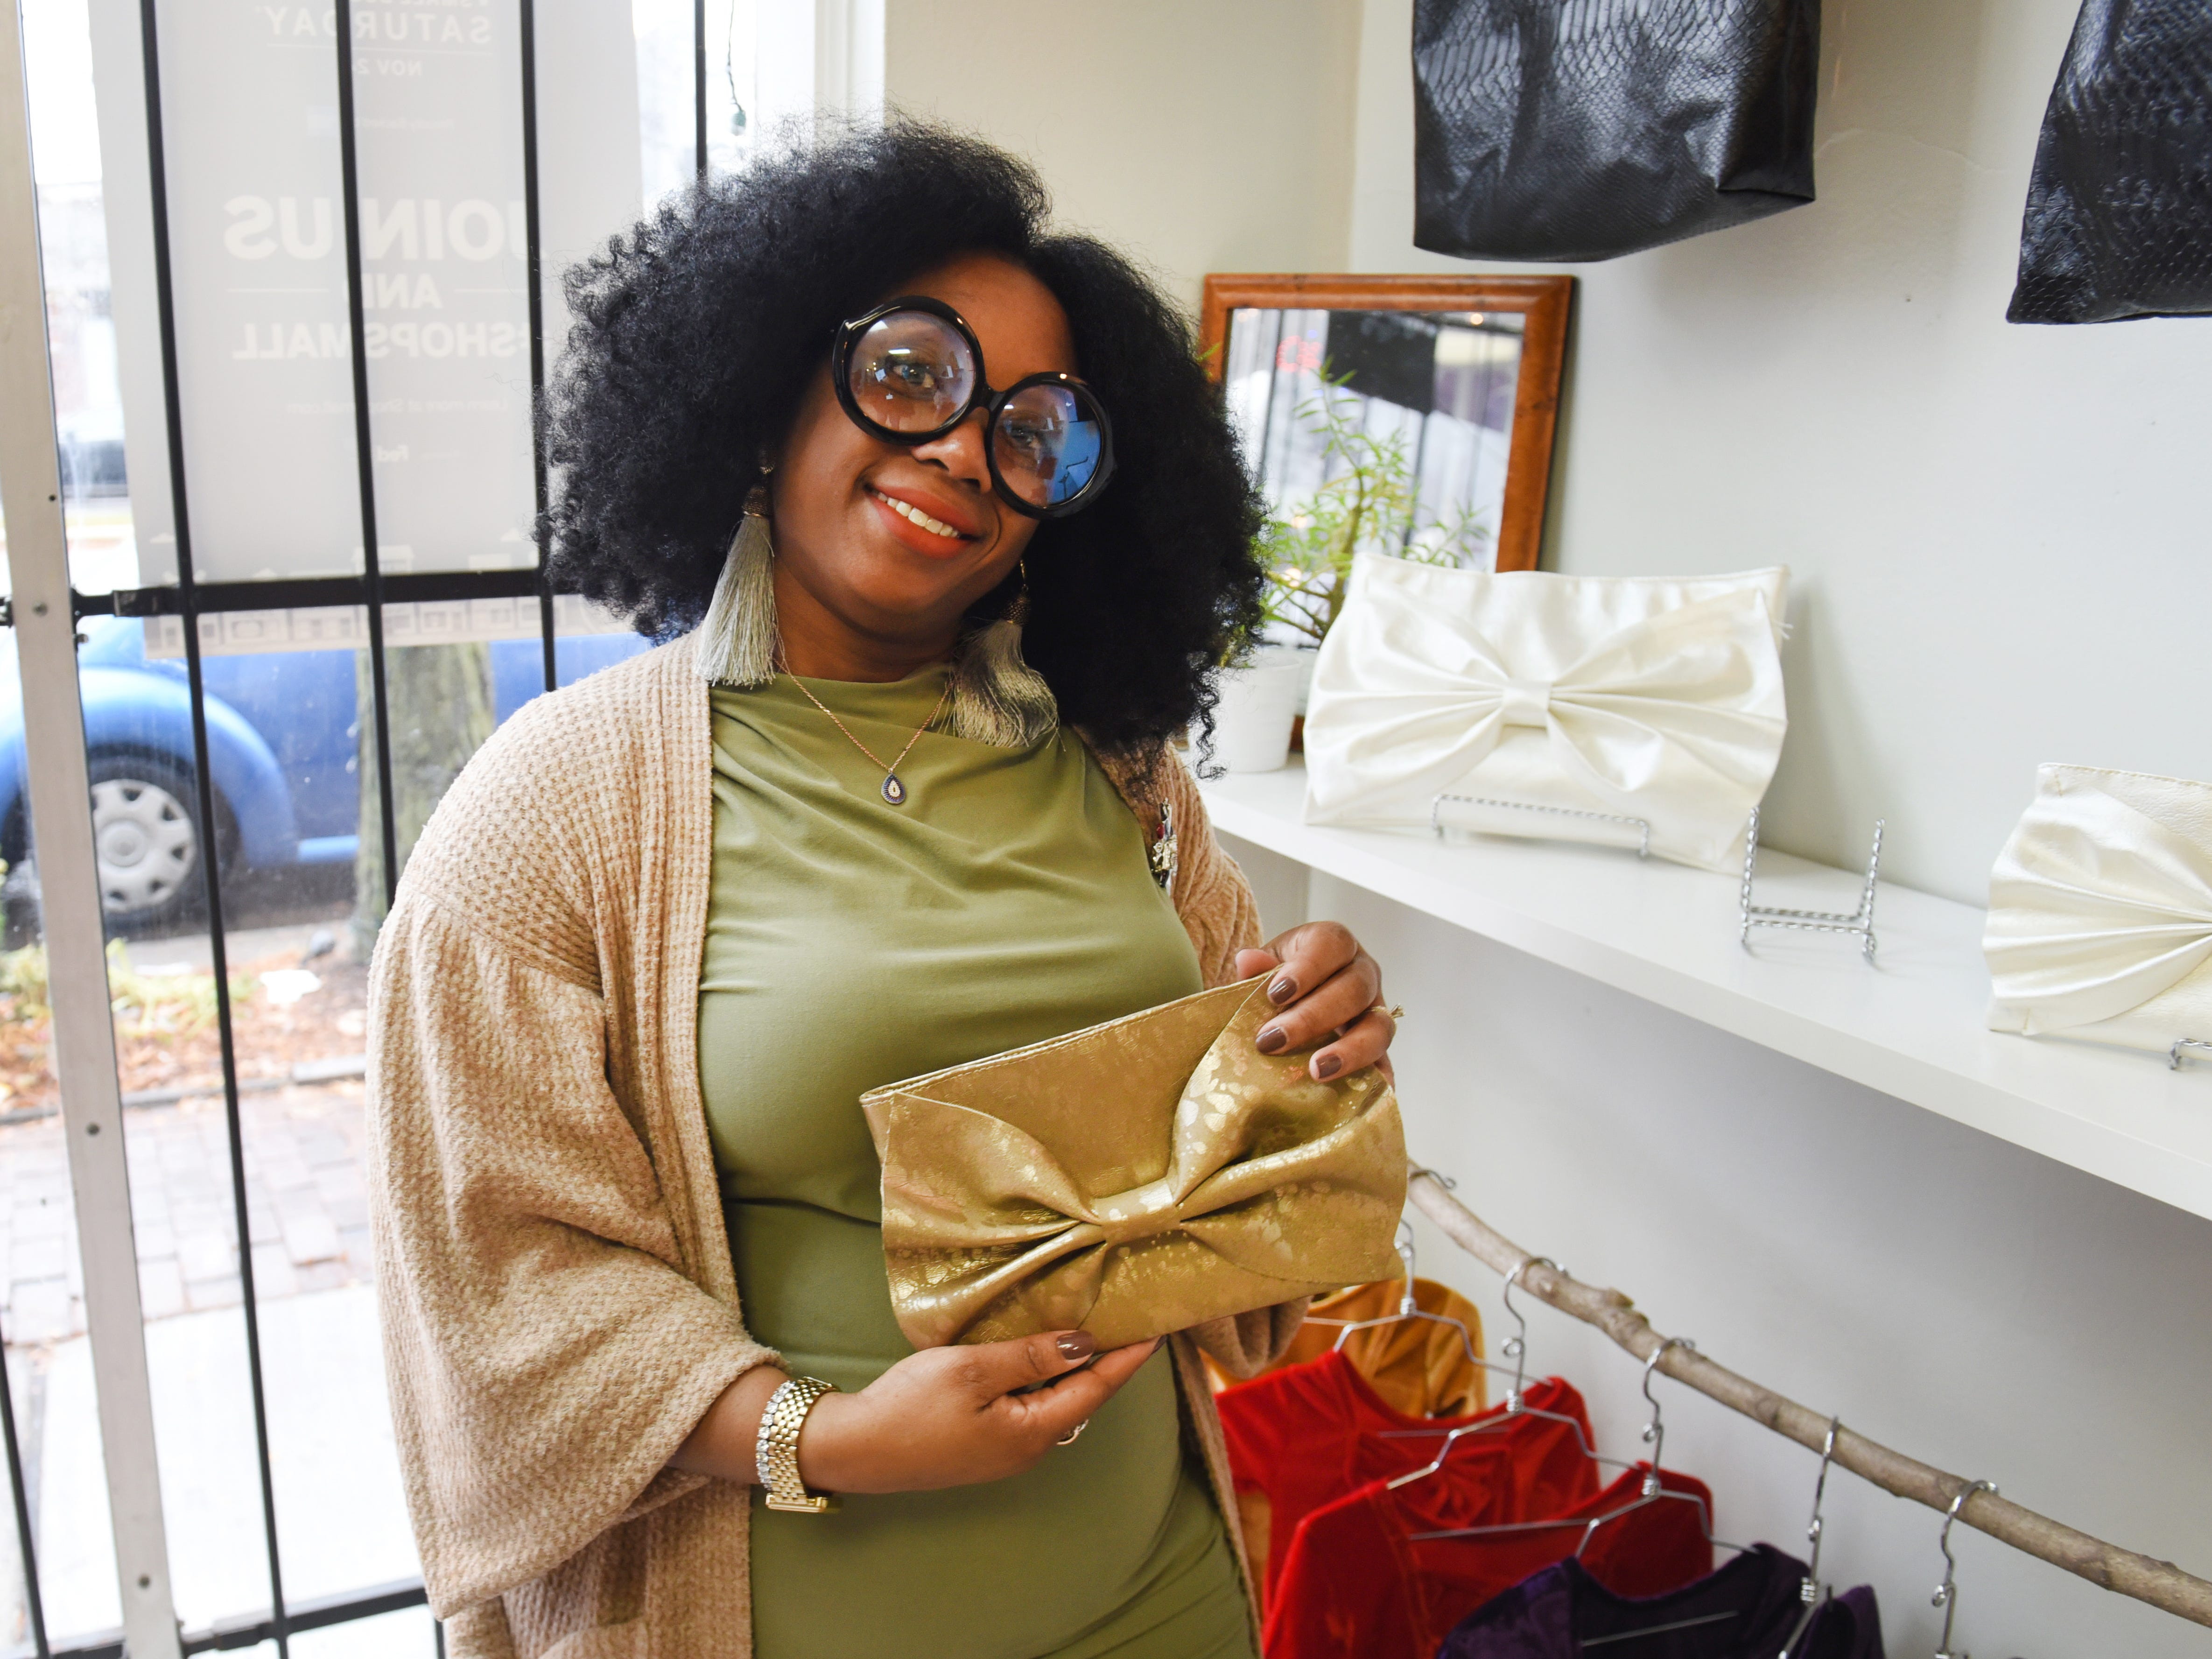 Amira Williams Estell, owner, Mira Estell, show off her custom handbags at a pop-up store along the Avenue of Fashion for Small Business Saturday.